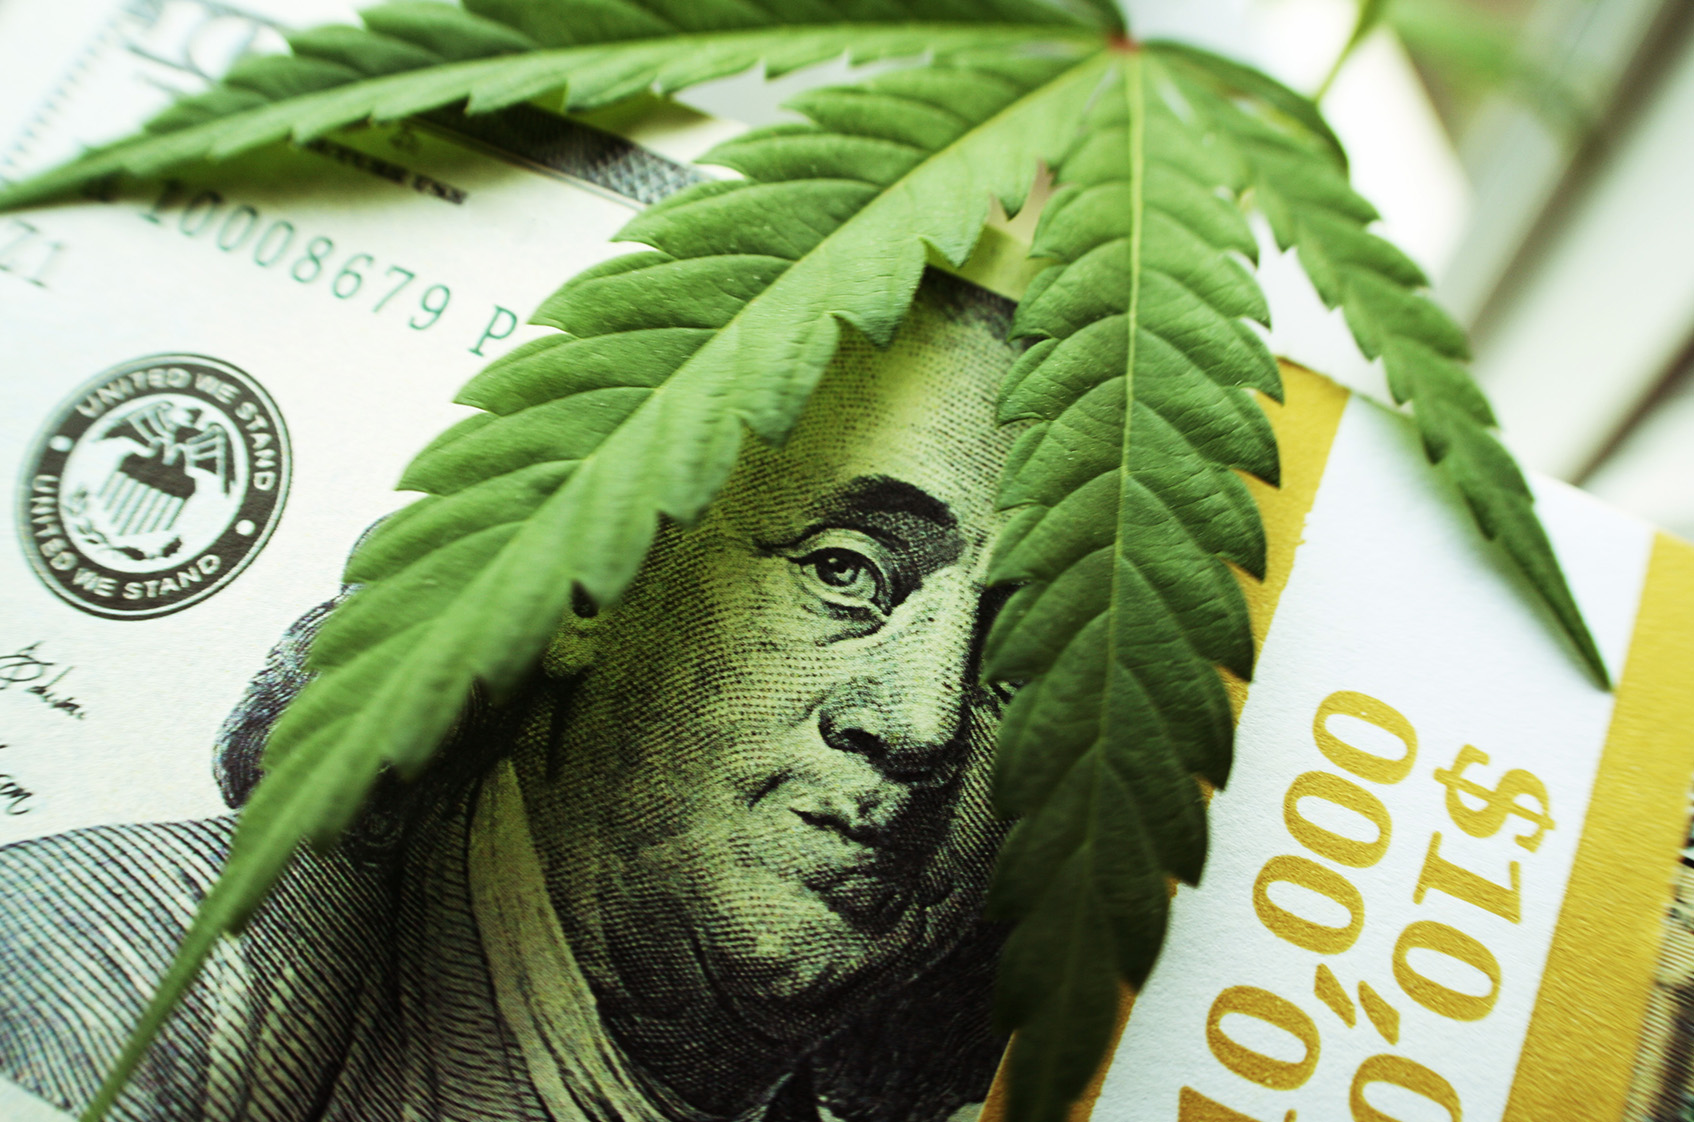 Cannabis innovation etfs woo investors at moneyshow for Spiegel young money etf